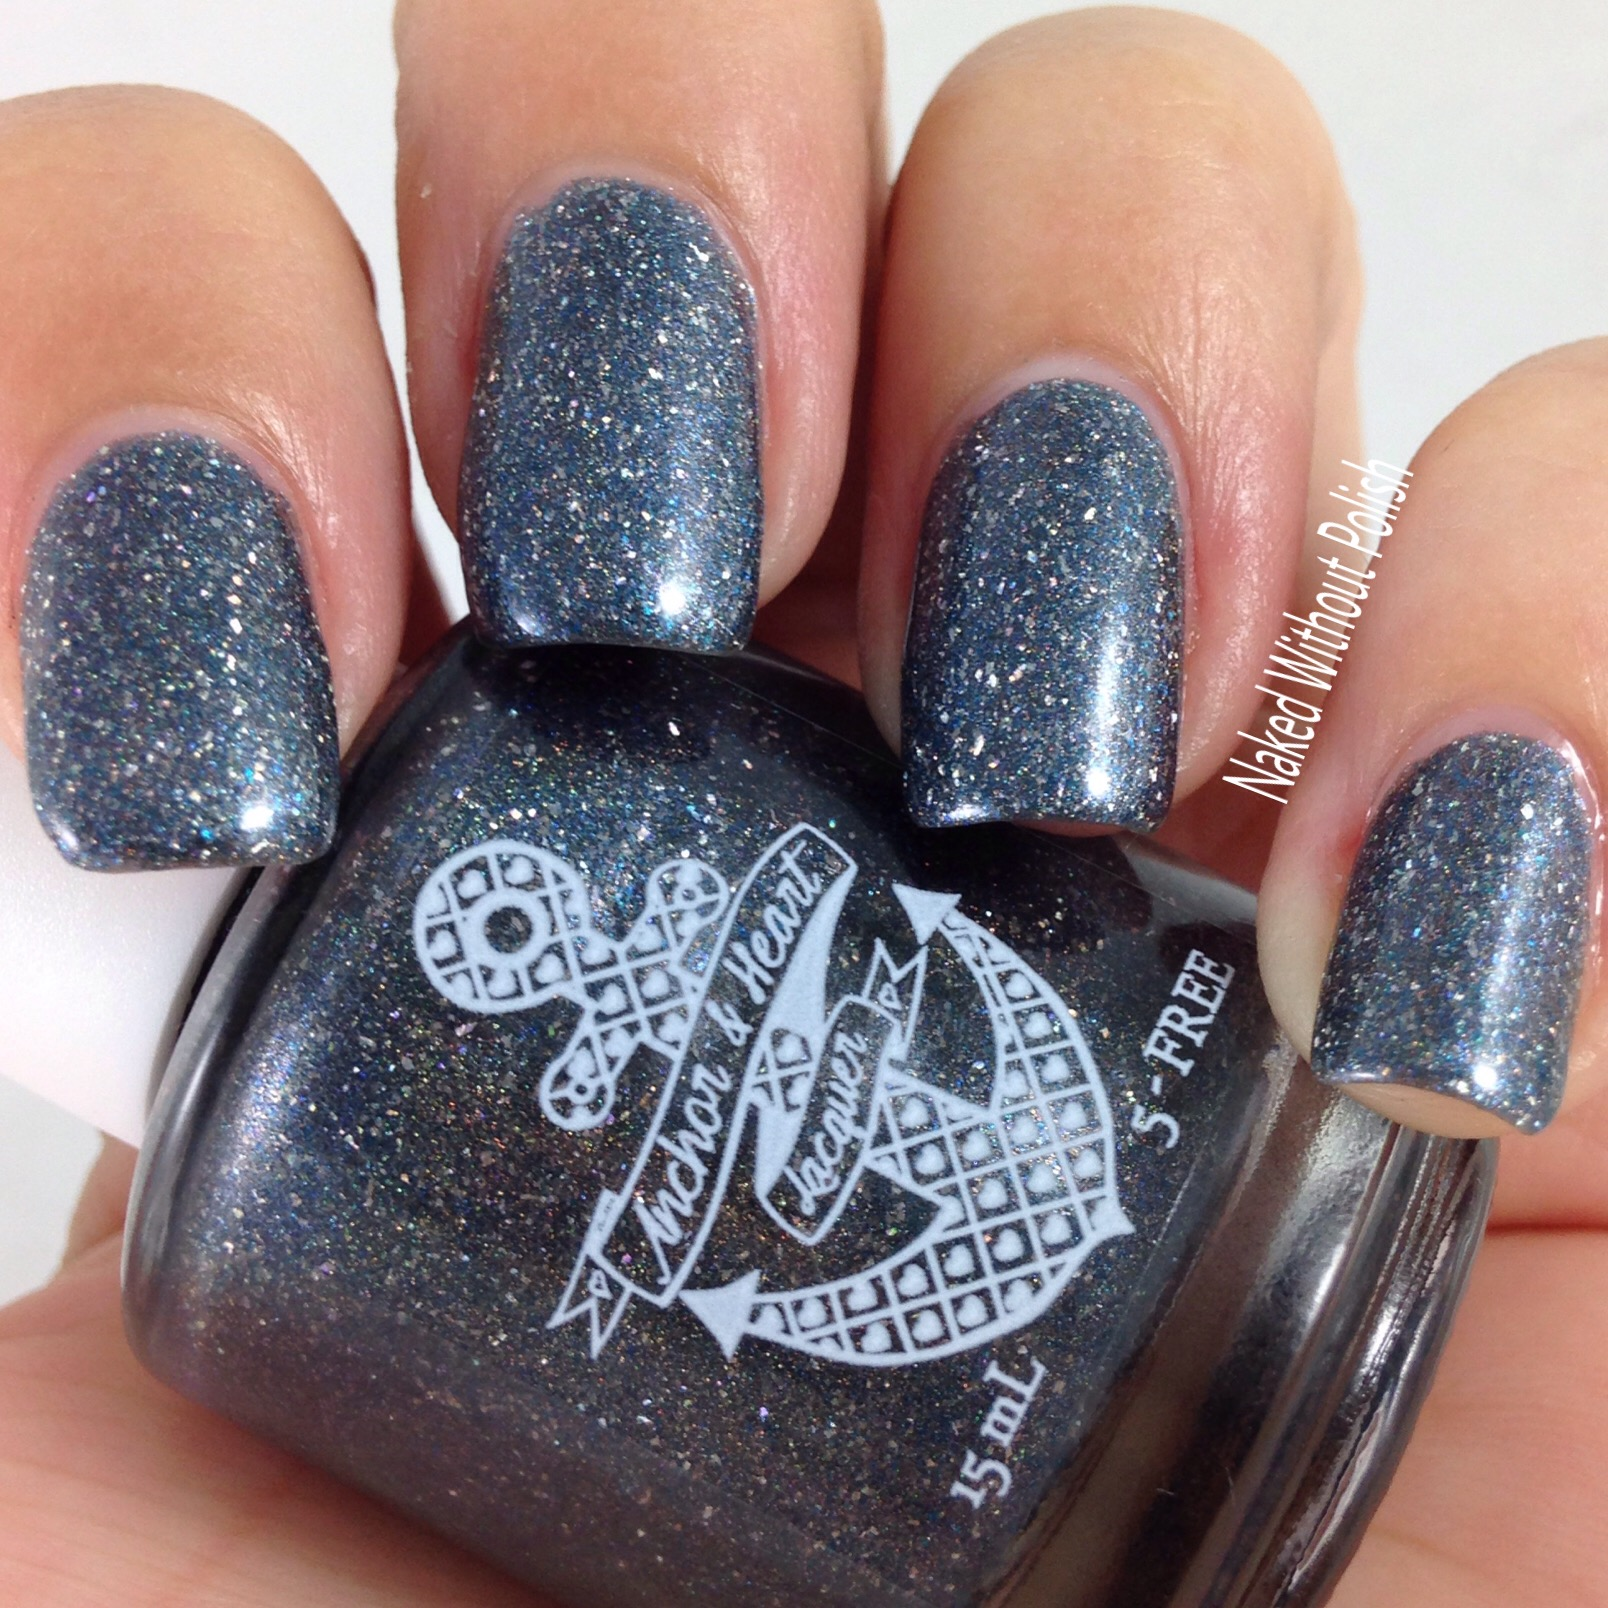 Anchor-and-Heart-Lacquer-Stronger-Than-Yesterday-6